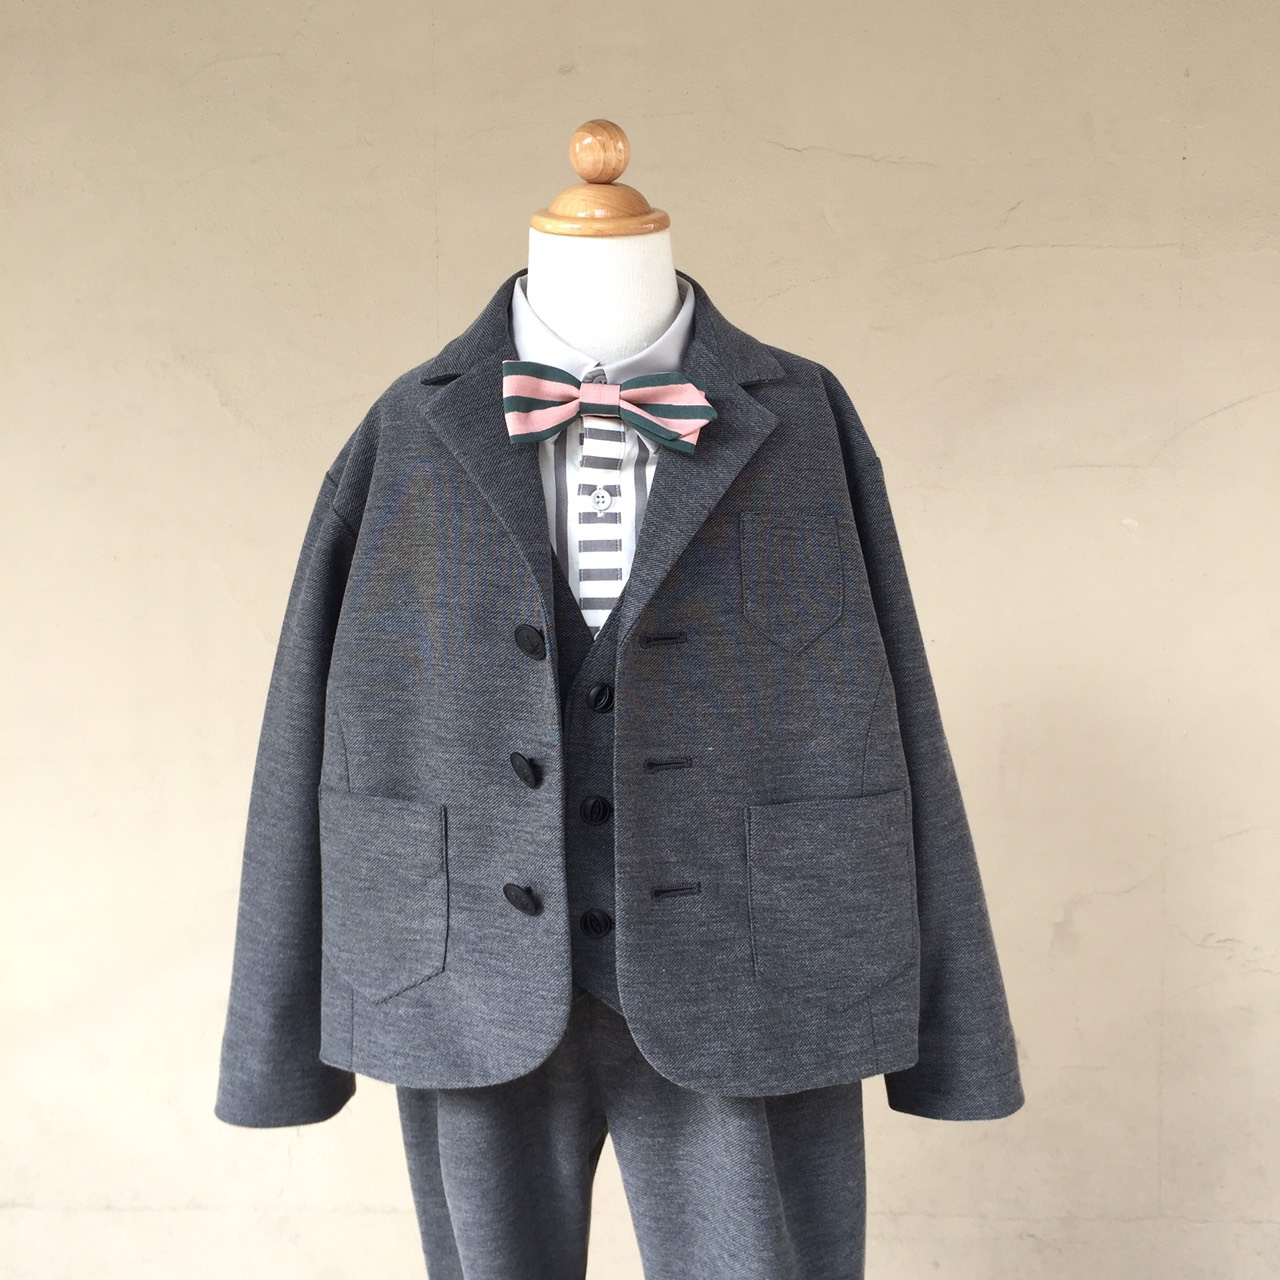 【cokitica】ceremony tailored collar jacket